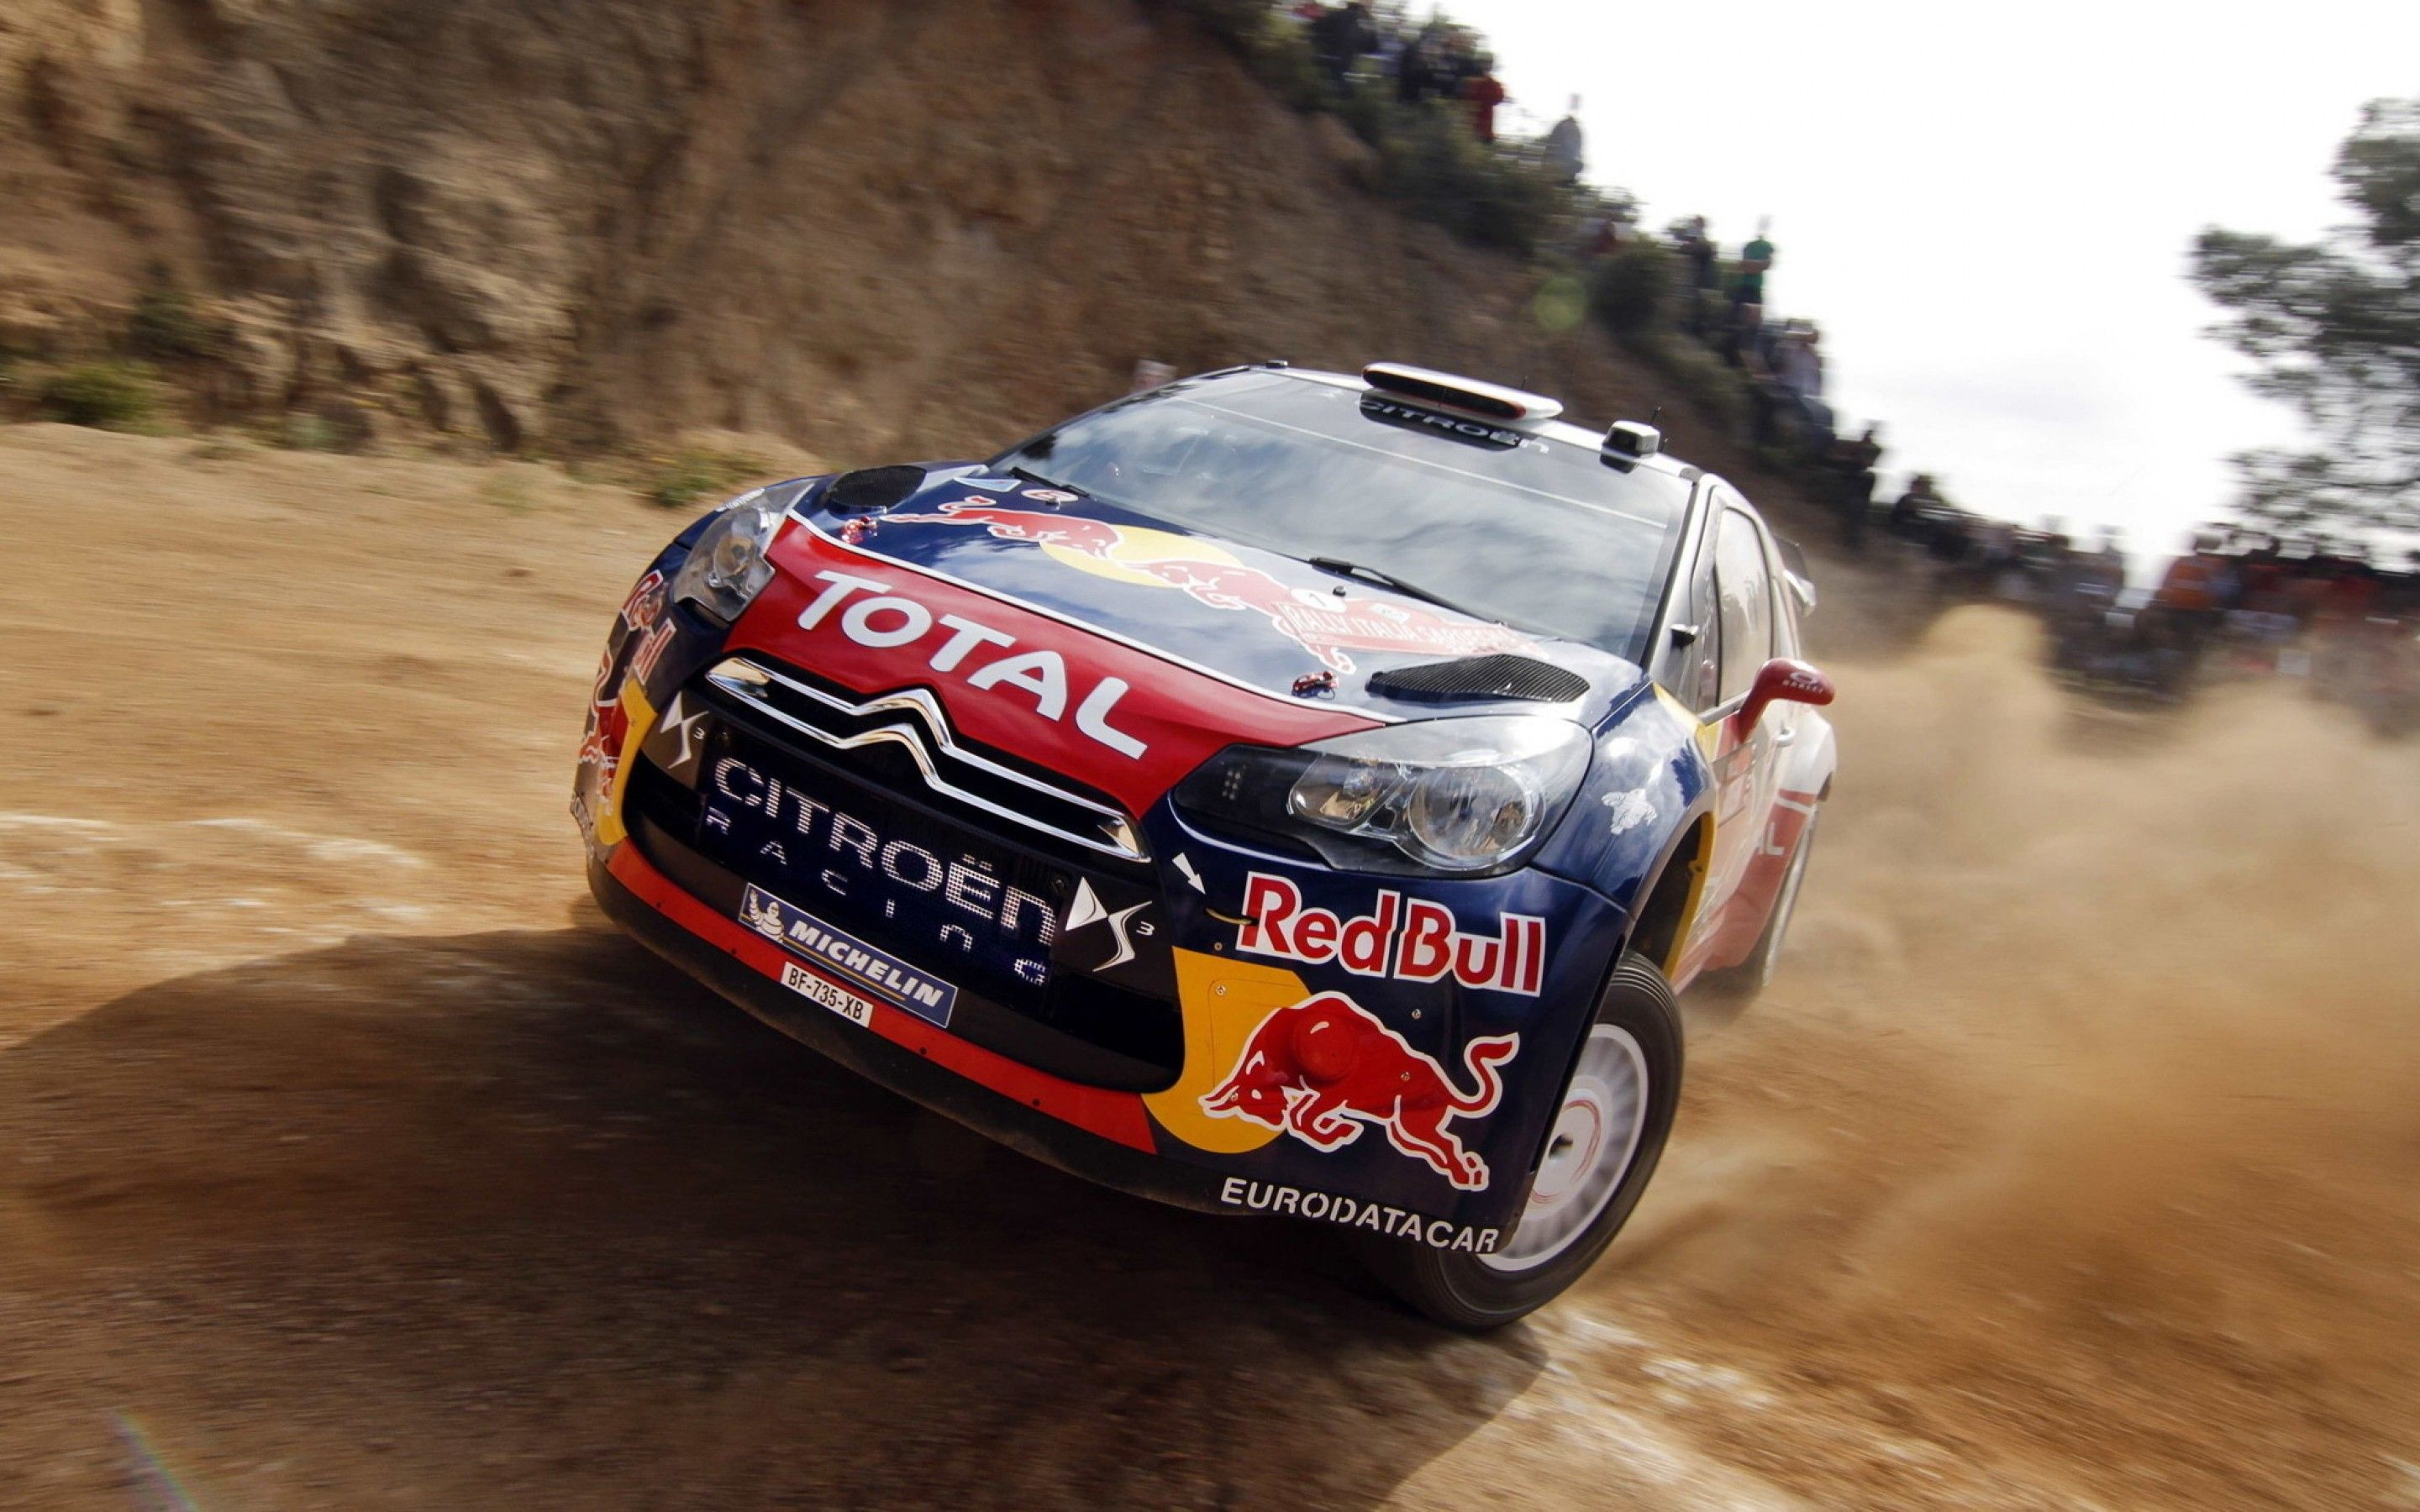 auto-rally-hd-wallpapers-1   Auto Rally HD Wallpapers   Pinterest ...